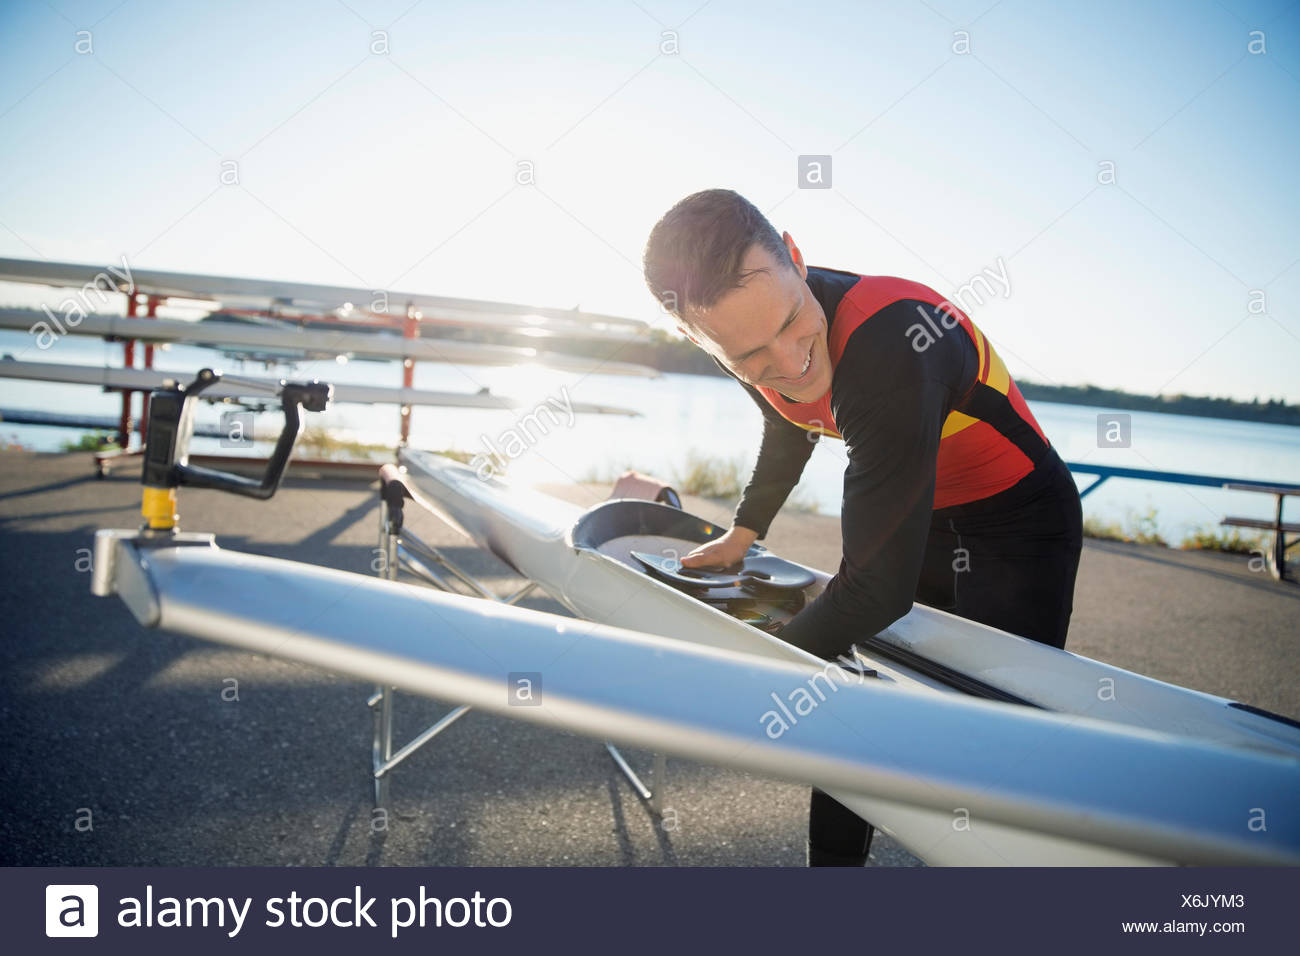 Rower with scull at waterfront - Stock Image